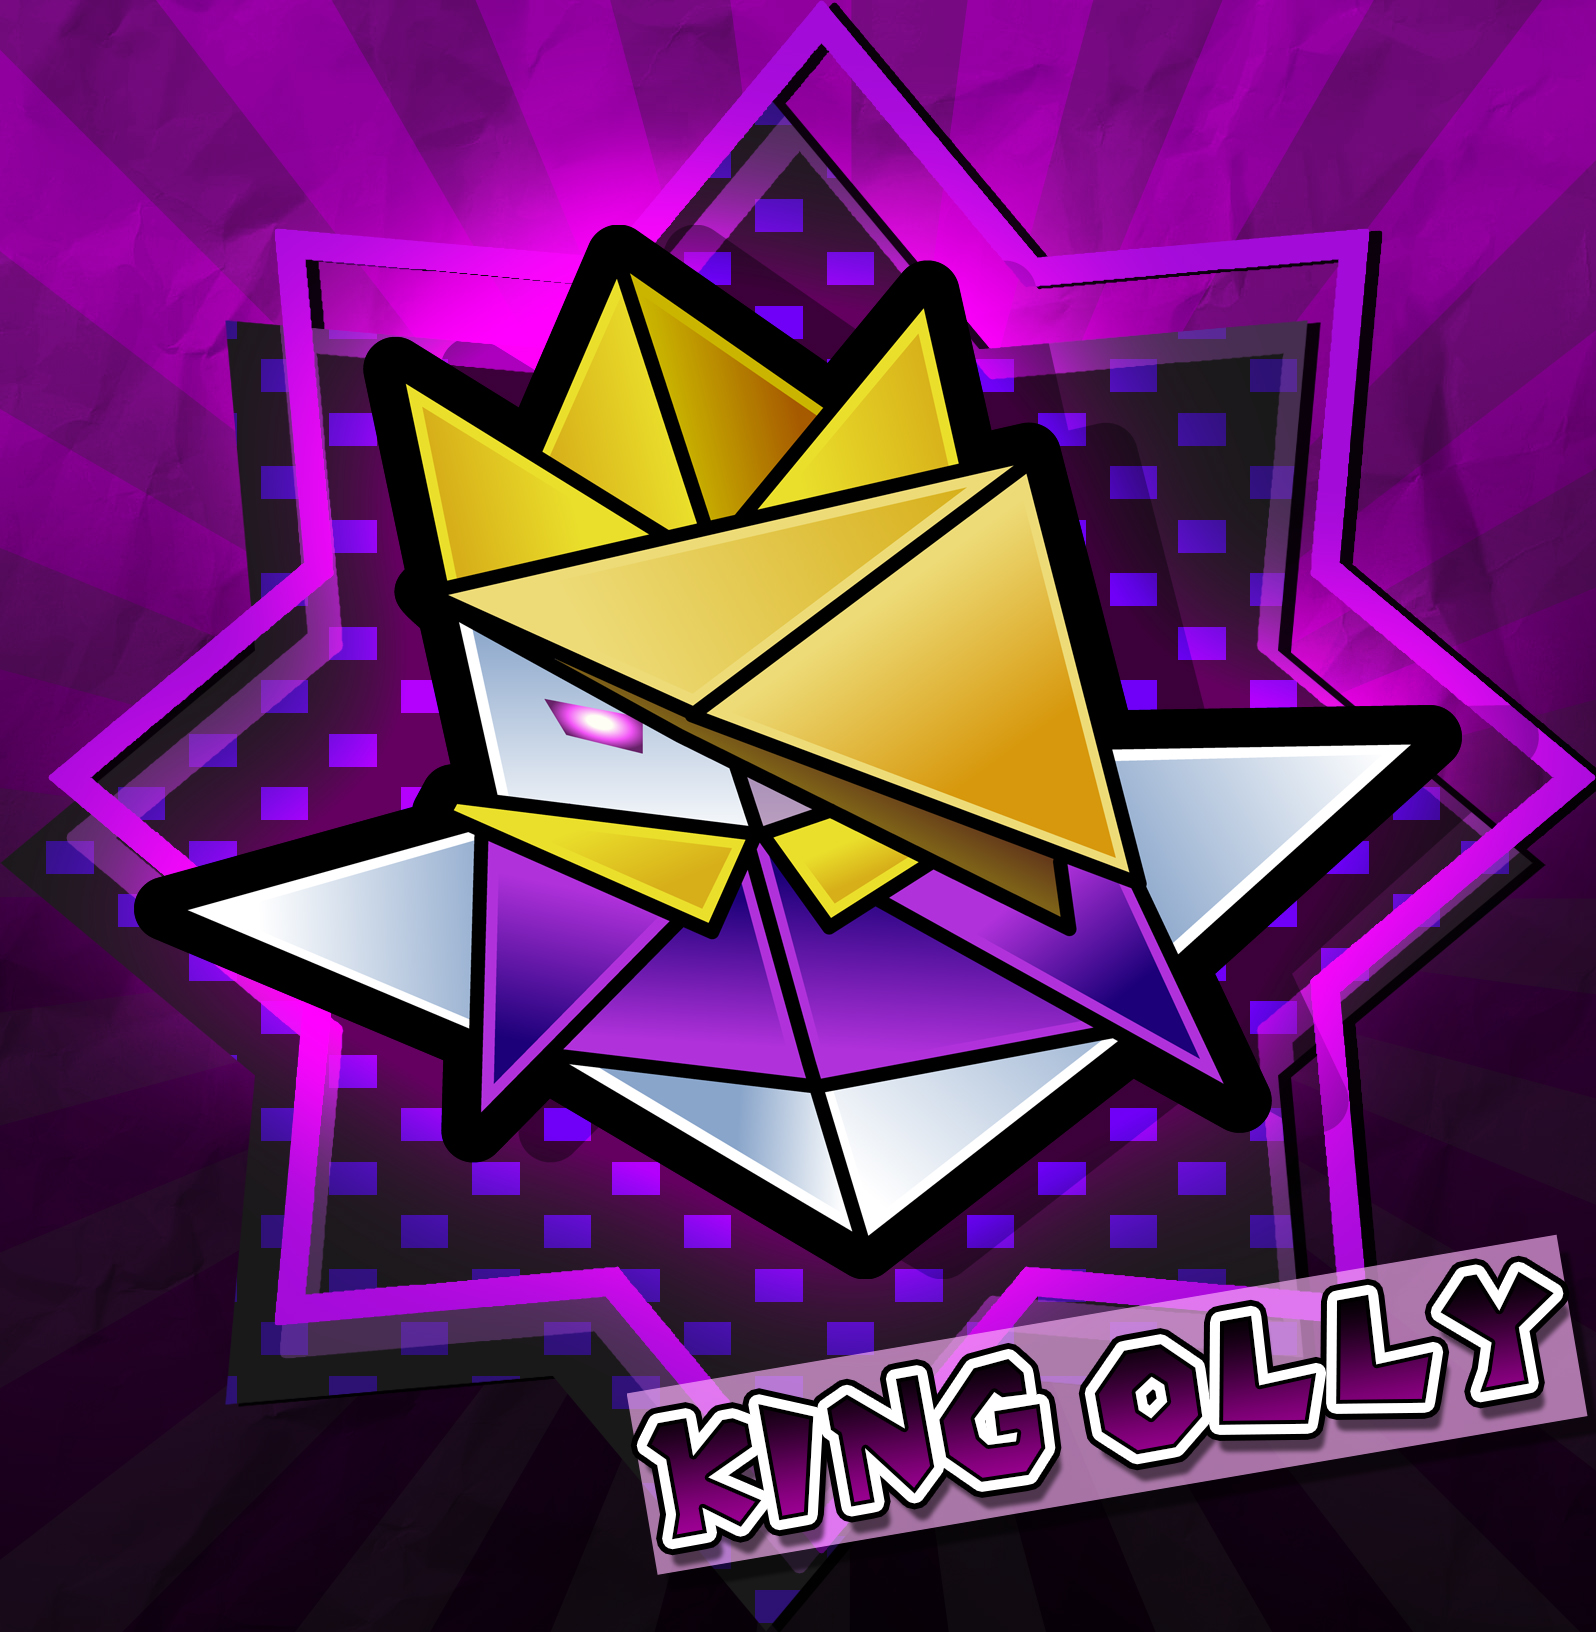 King Olly Classic Style.jpg